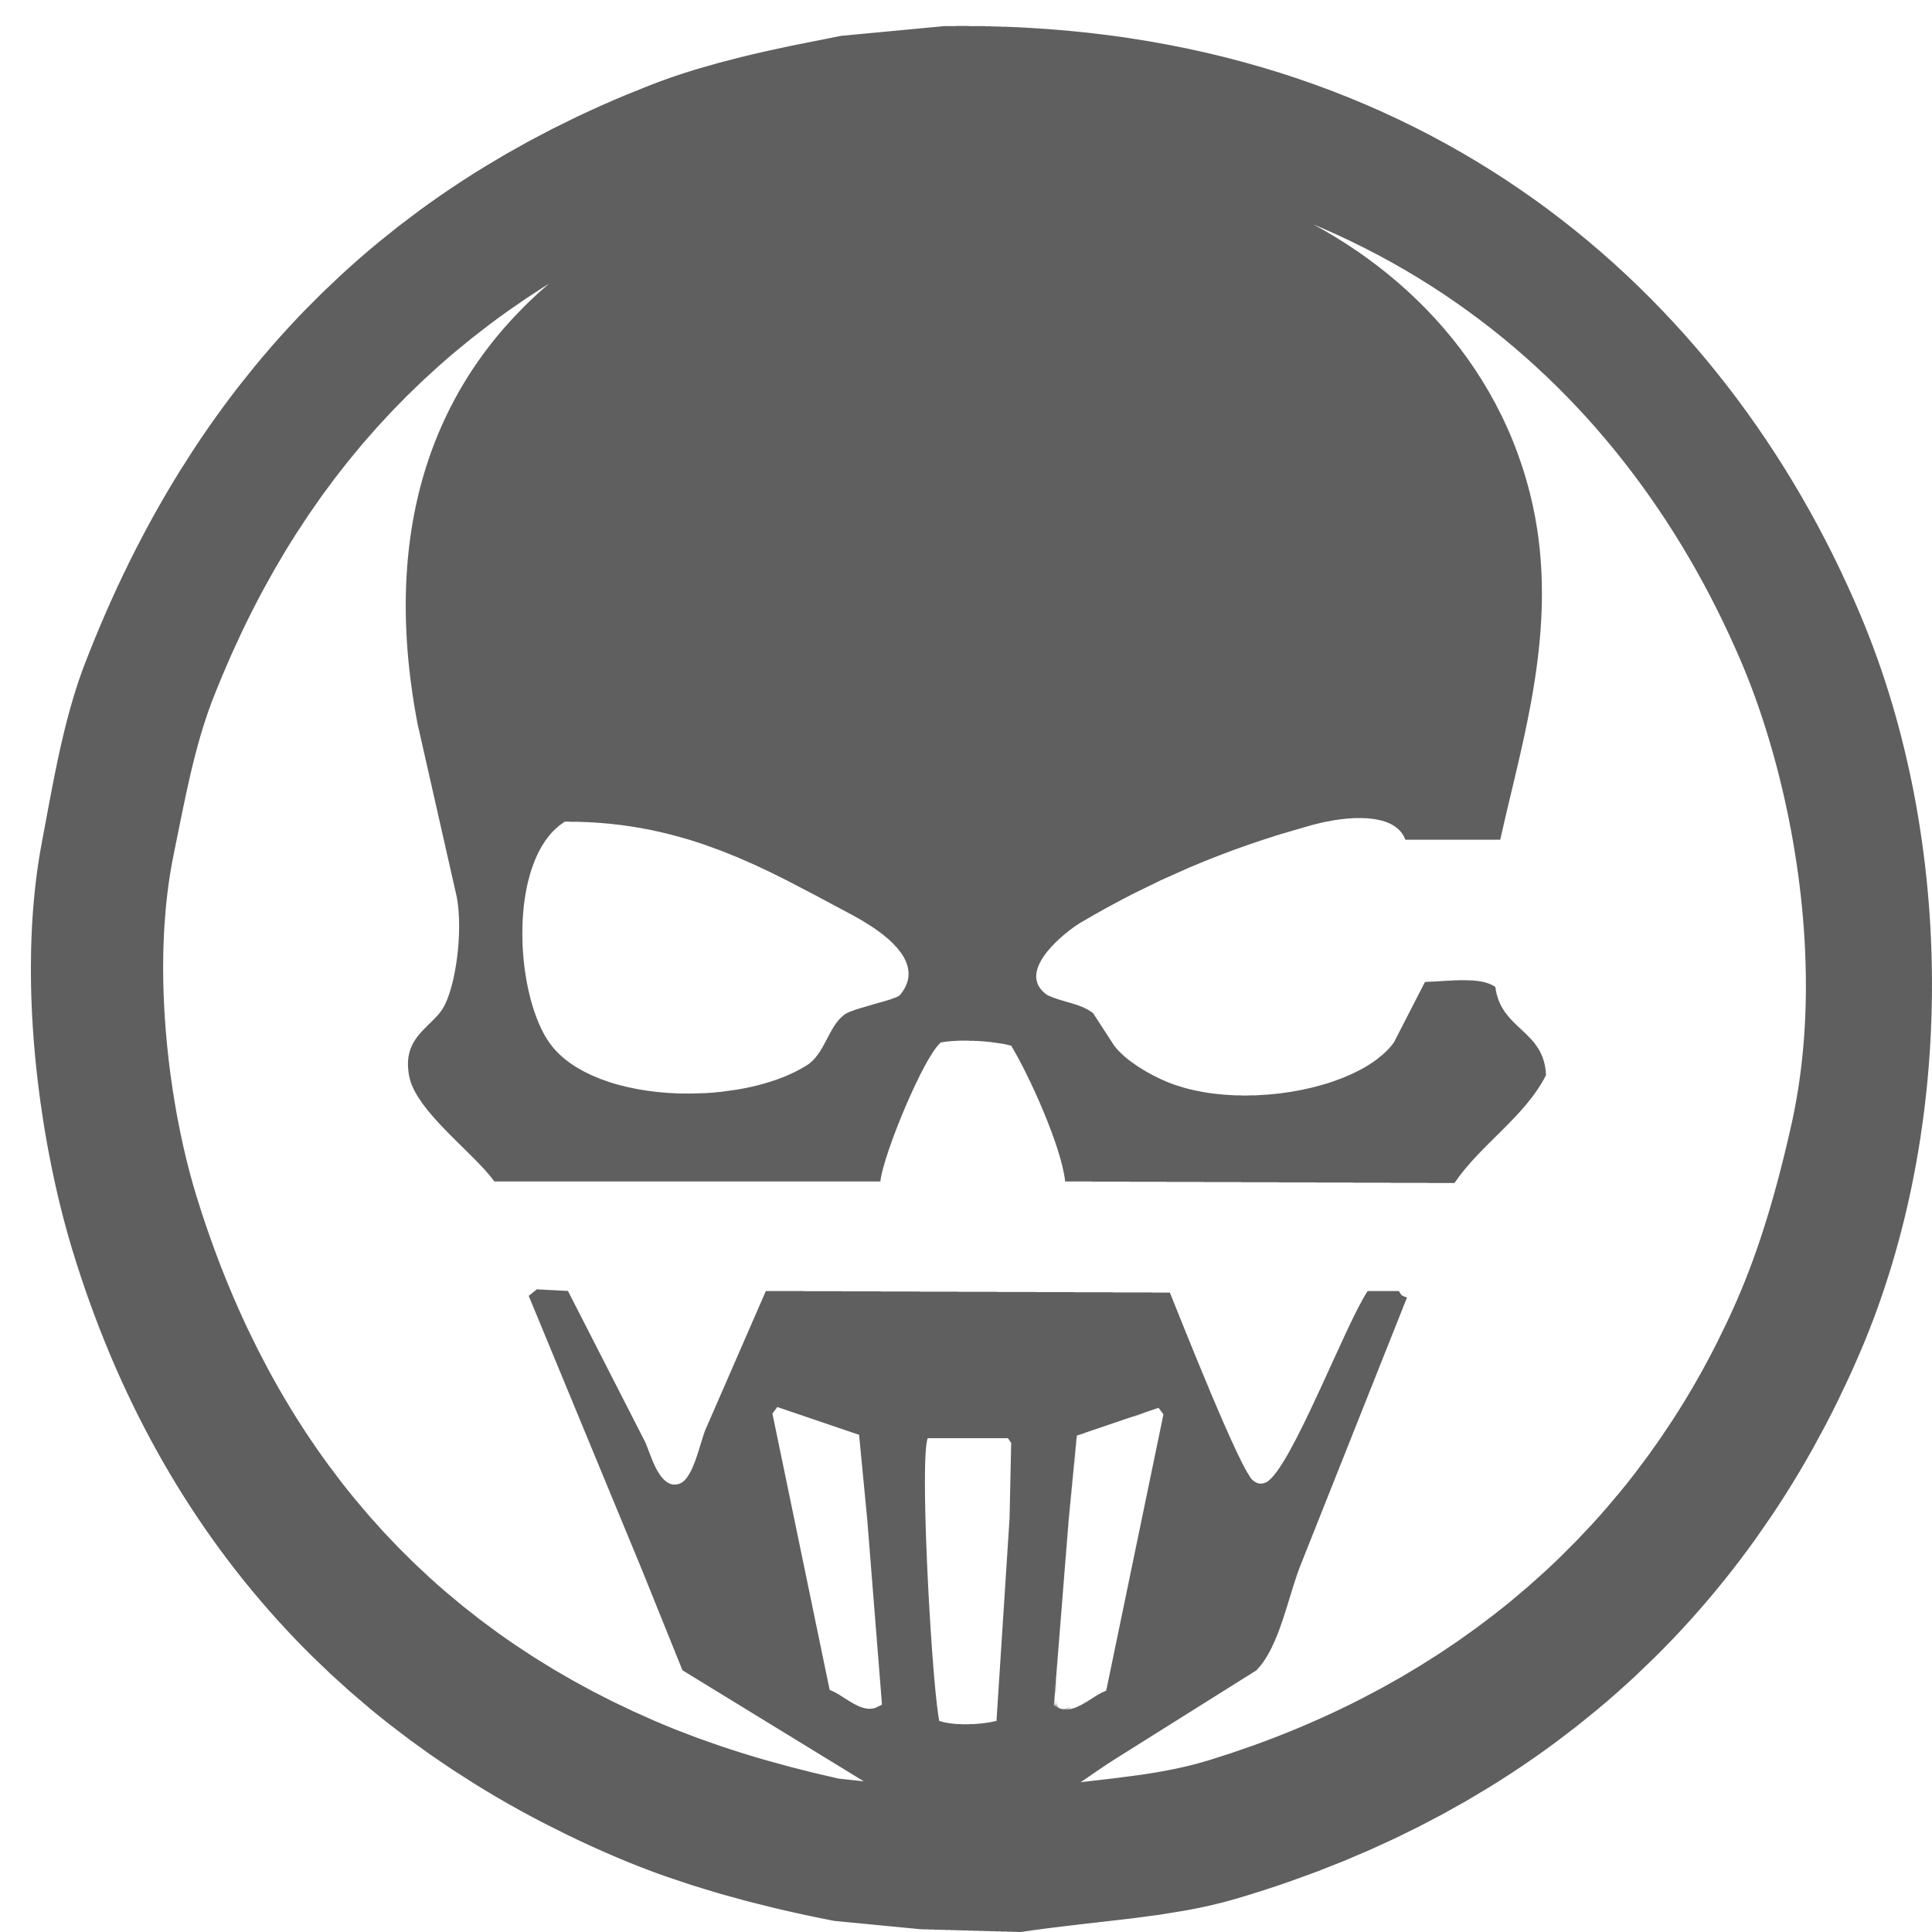 High Res Ghost Recon Logo 2000x2000px - Web & Graphic ...